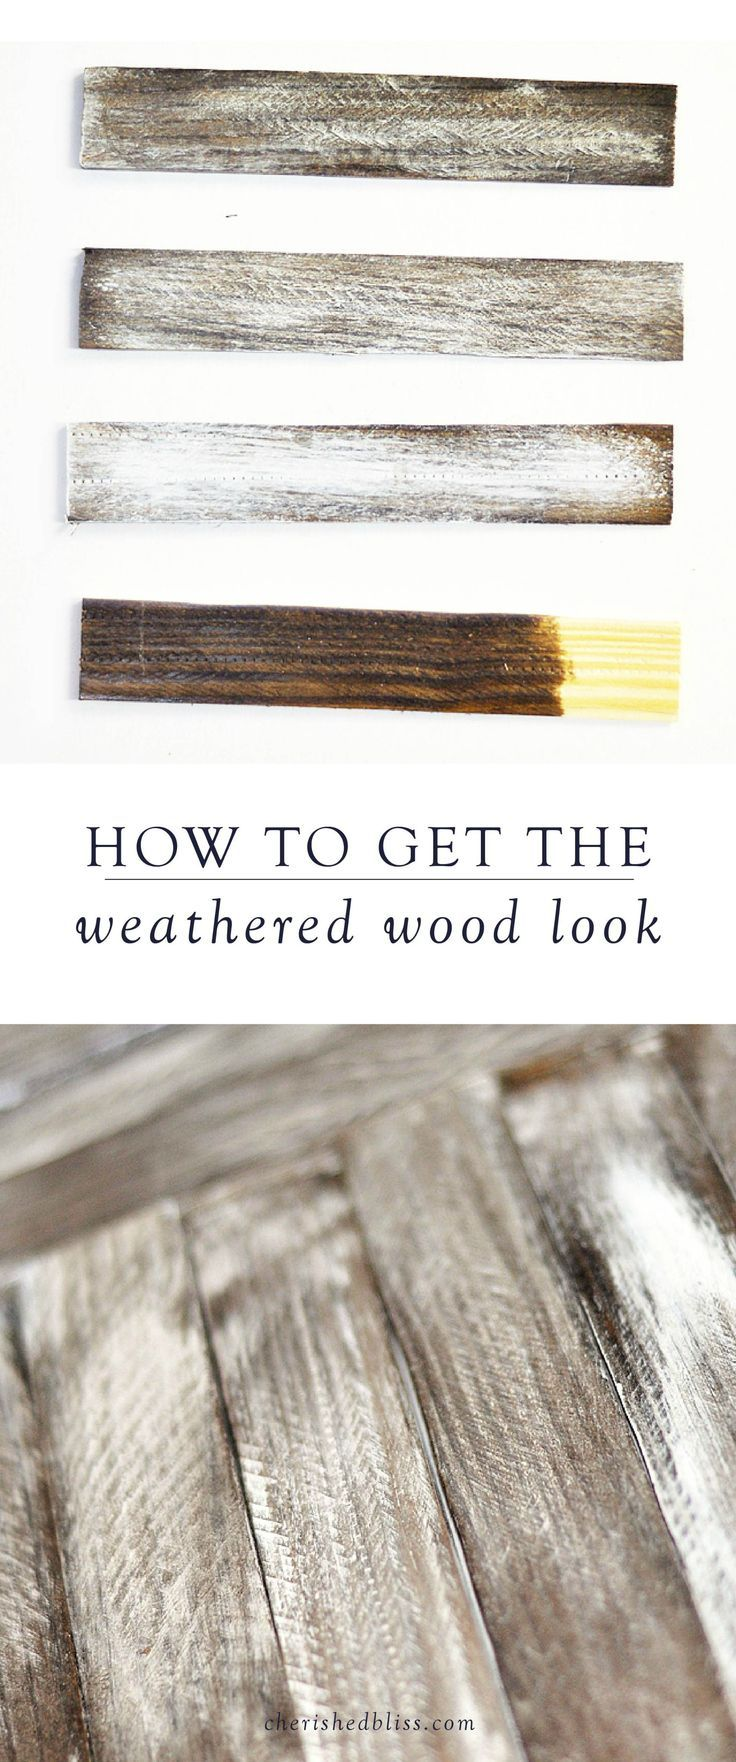 Owen s olivia whitewashed wood technique tutorial - Tutorial For Distressing And Antiquing New Wood Wood Stained Weathered Distressed Finishes Diy Pinterest Tutorials Woods And Craft